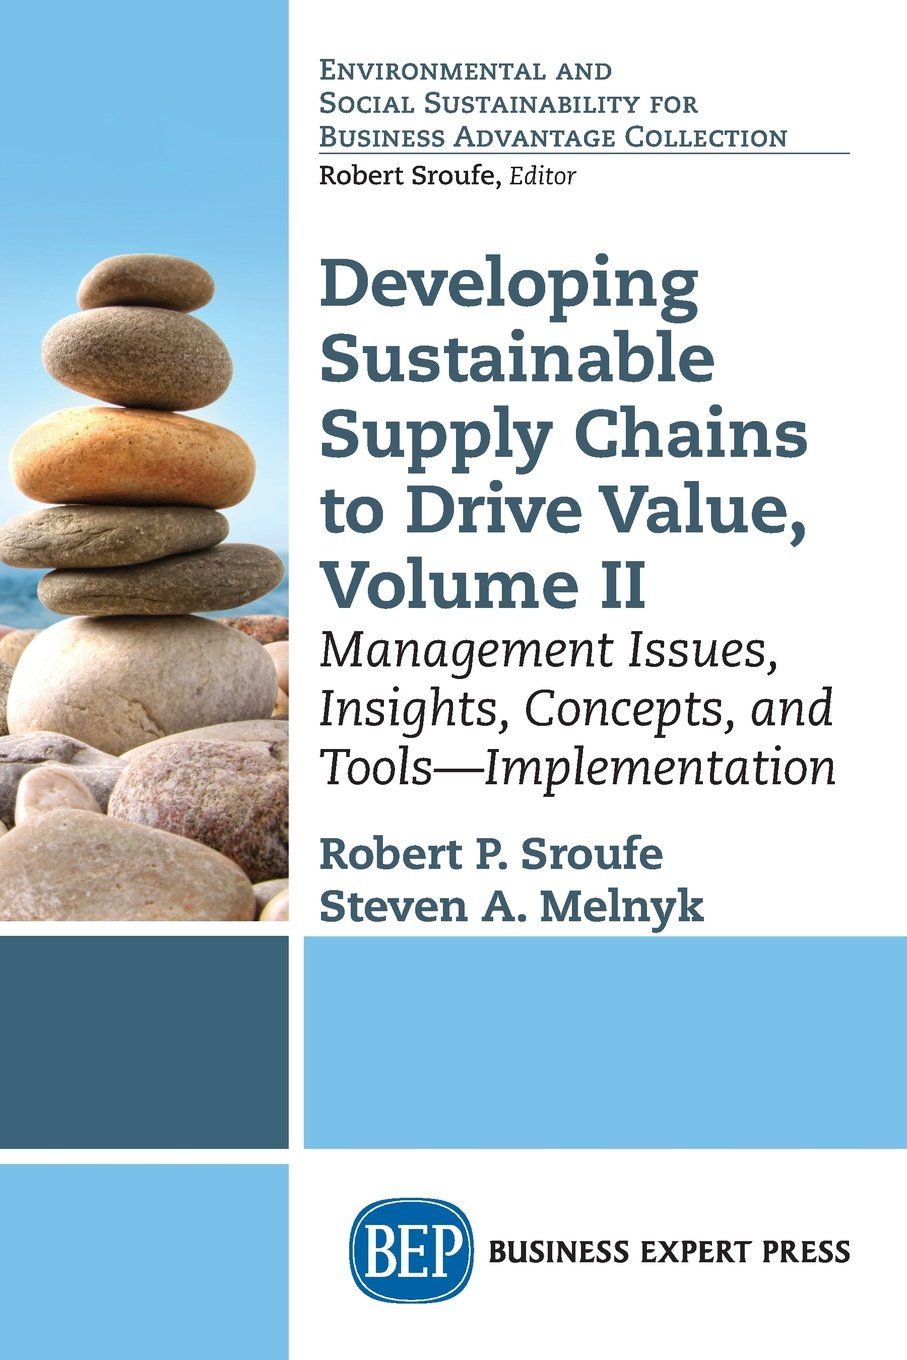 Download Developing Sustainable Supply Chains to Drive Value, Volume II: Management Issues, Insights, Concepts, and Tools-Implementation pdf epub